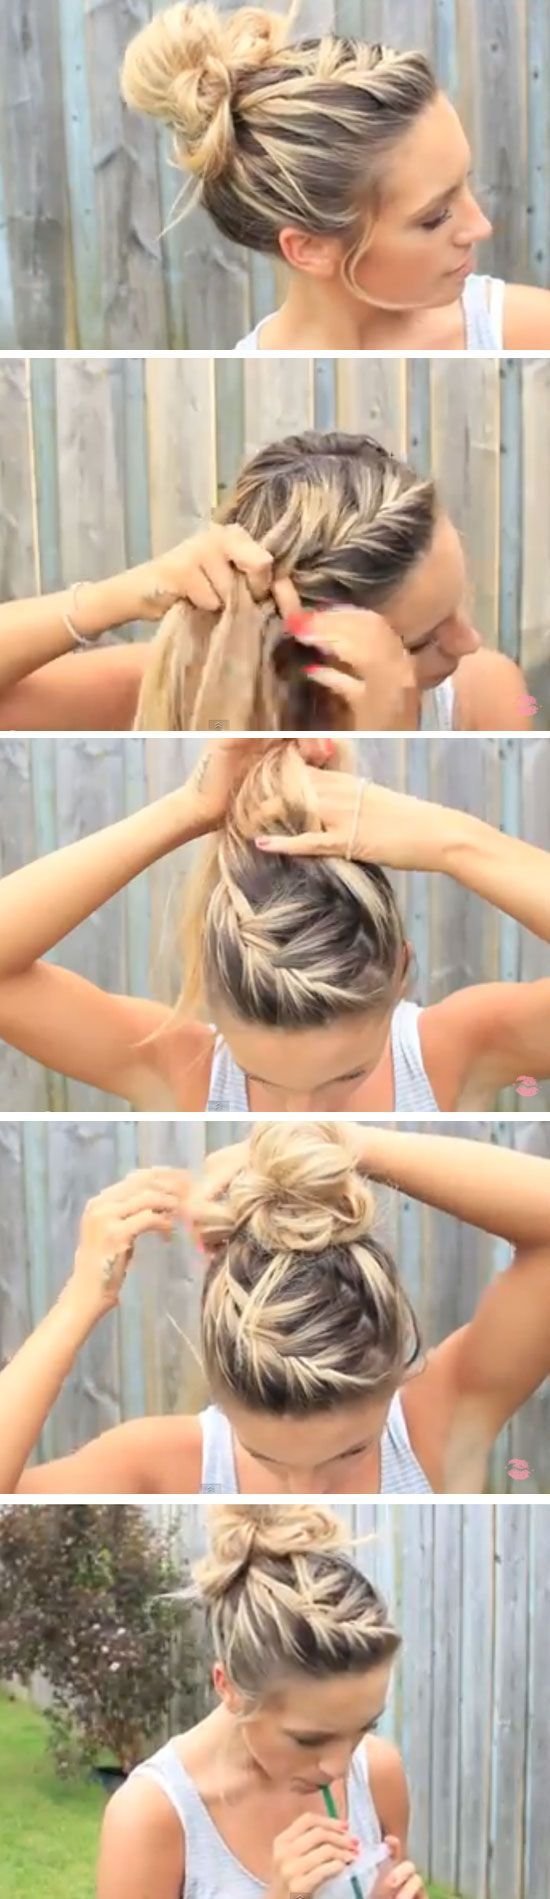 Awe Inspiring 1000 Ideas About Easy Hairstyles On Pinterest Hairstyles For Short Hairstyles For Black Women Fulllsitofus